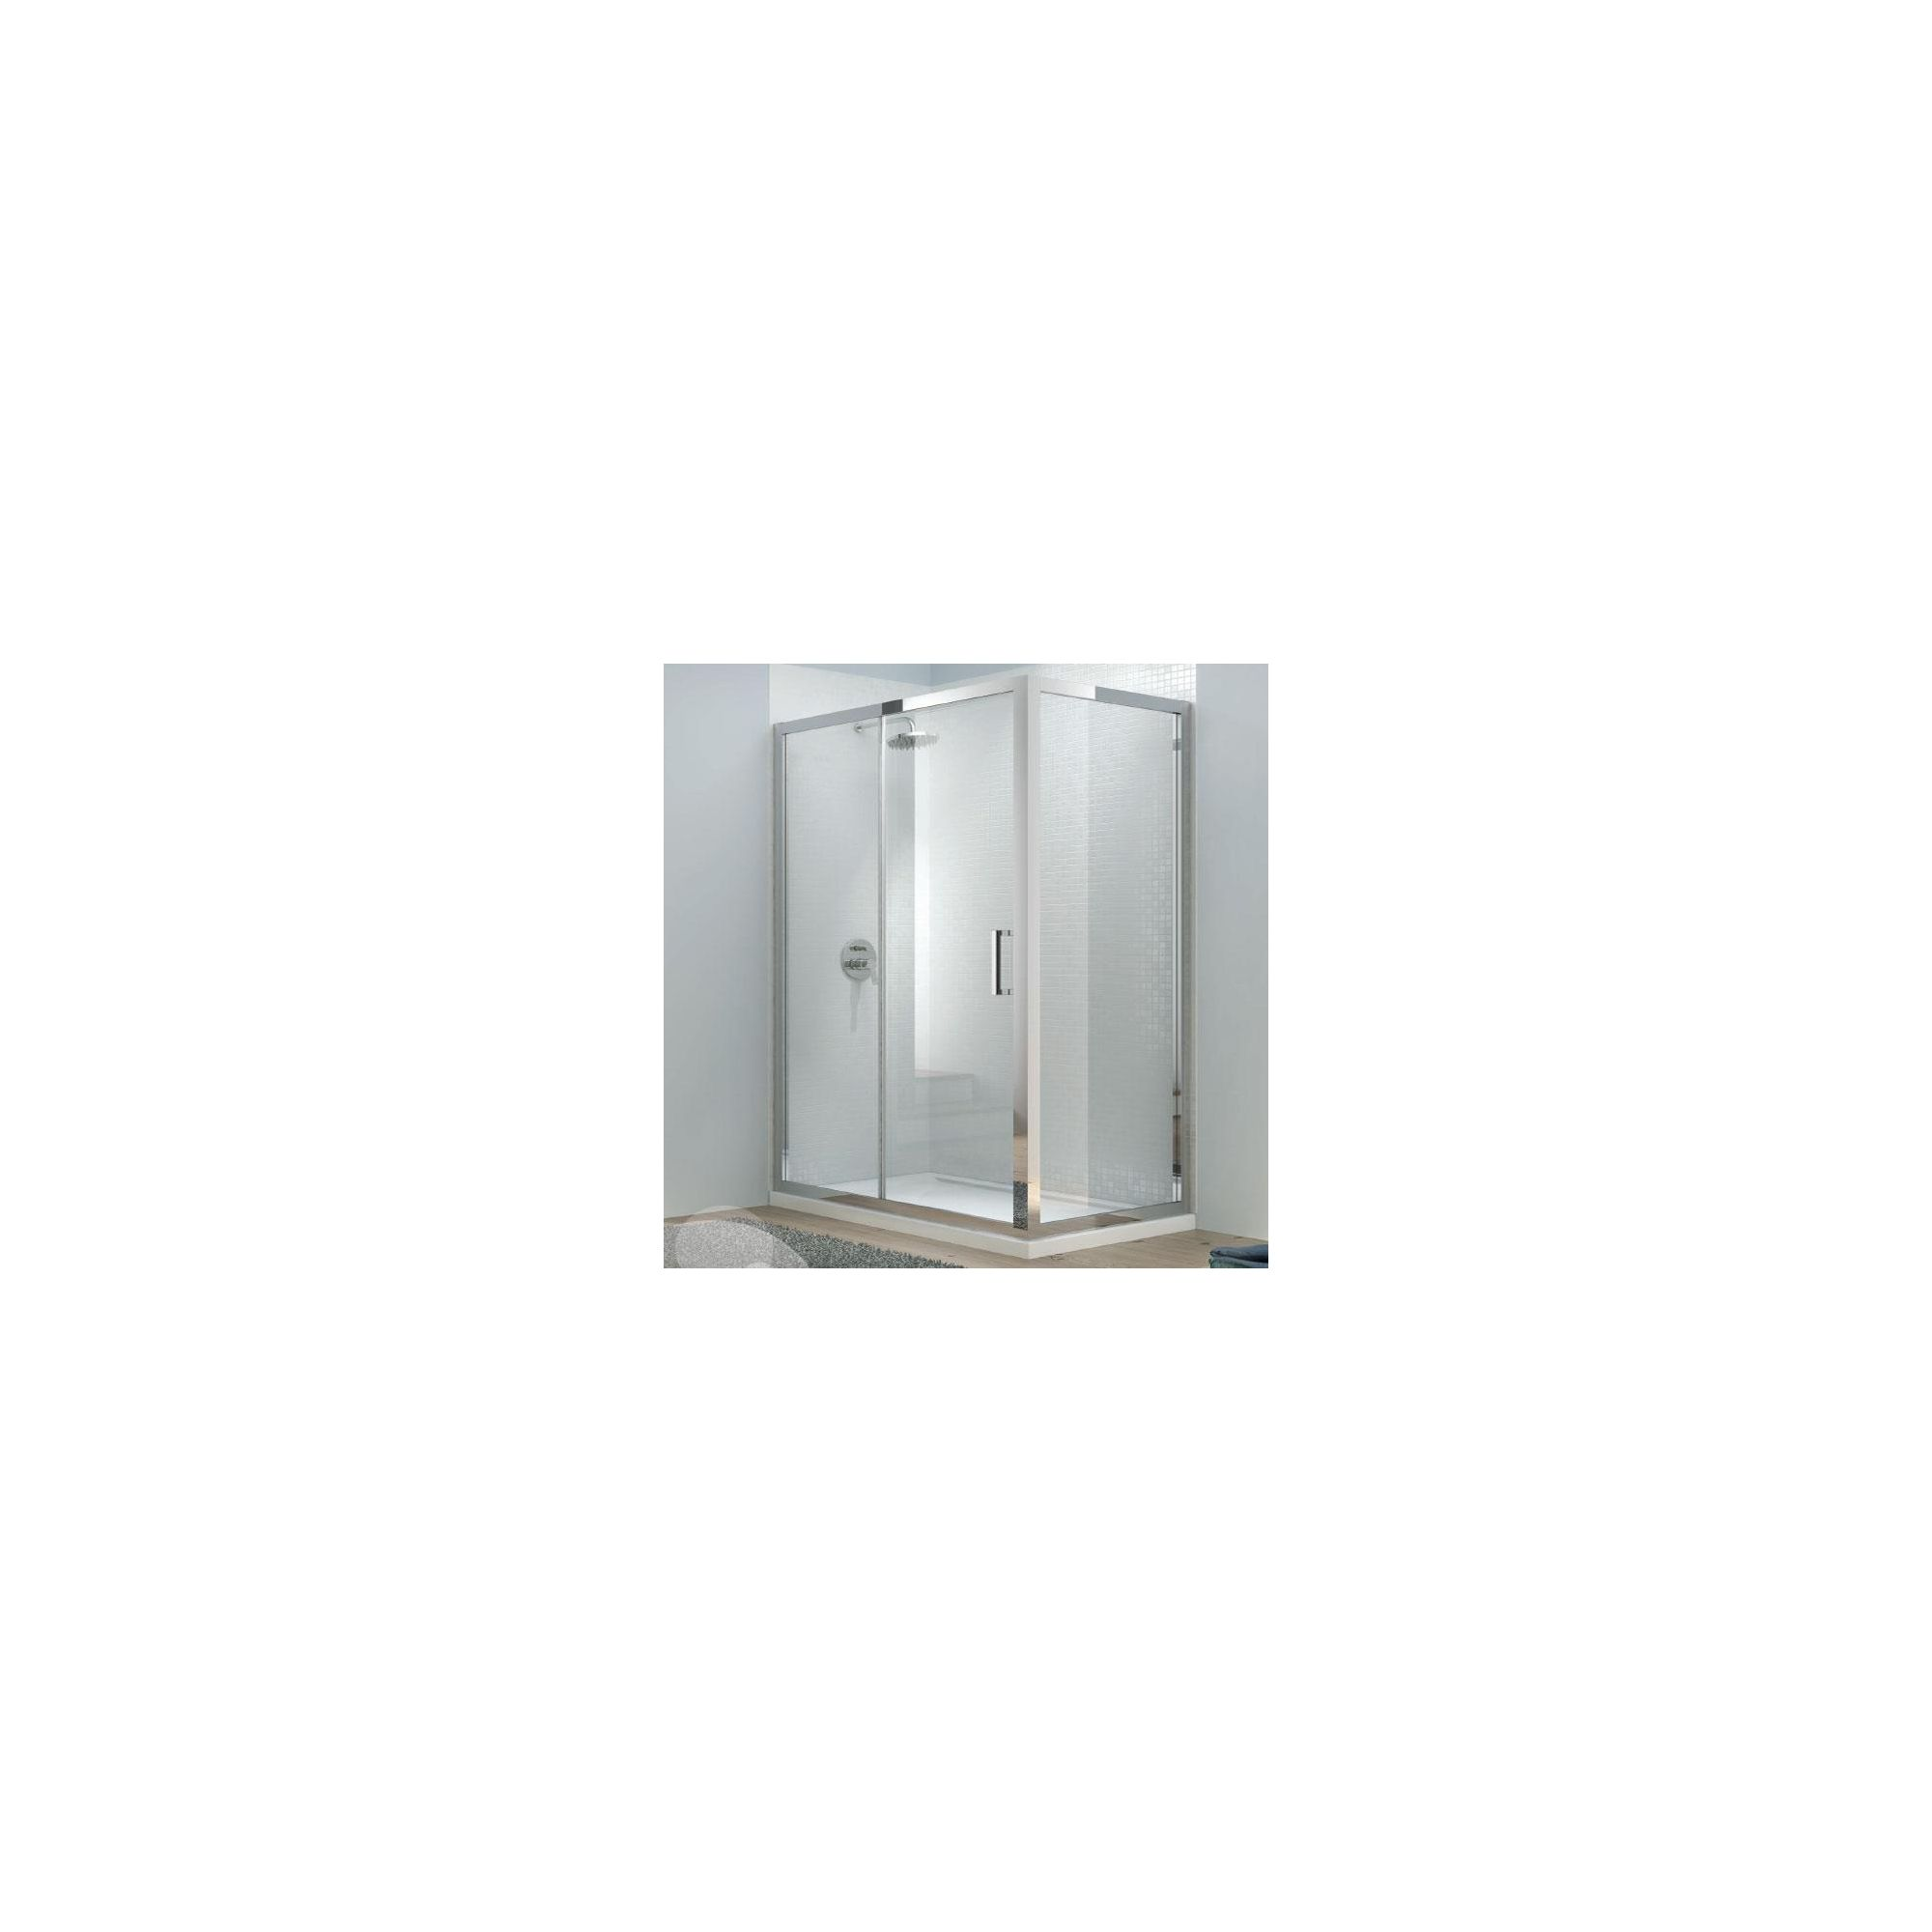 Merlyn Vivid Eight Sliding Door Shower Enclosure, 1000mm x 800mm, Low Profile Tray, 8mm Glass at Tesco Direct